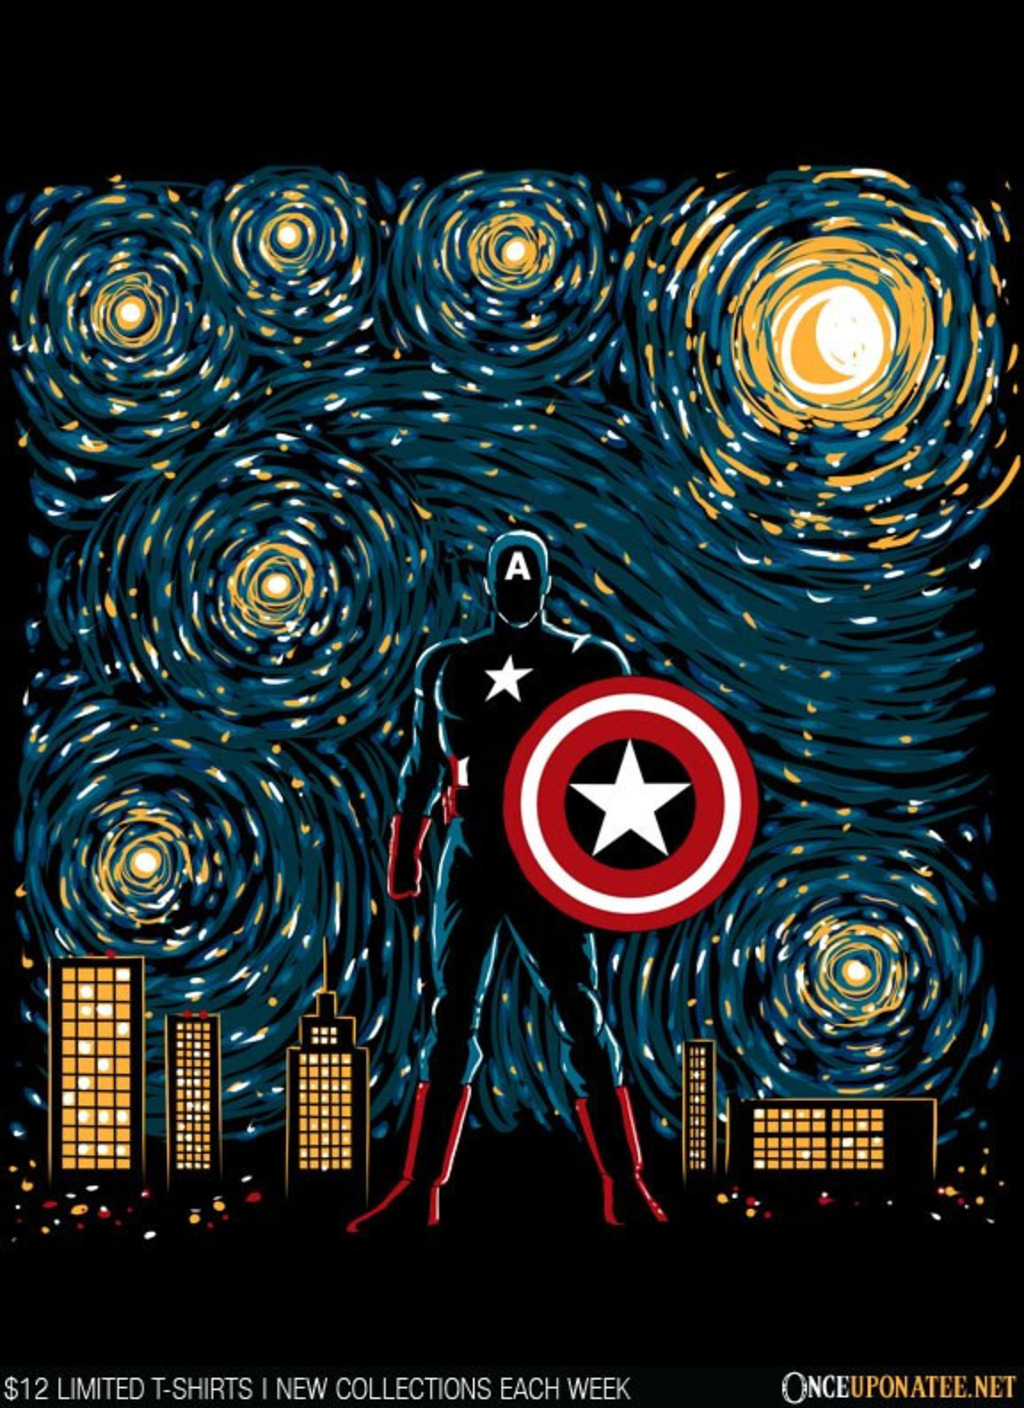 Once Upon a Tee: Starry Soldier